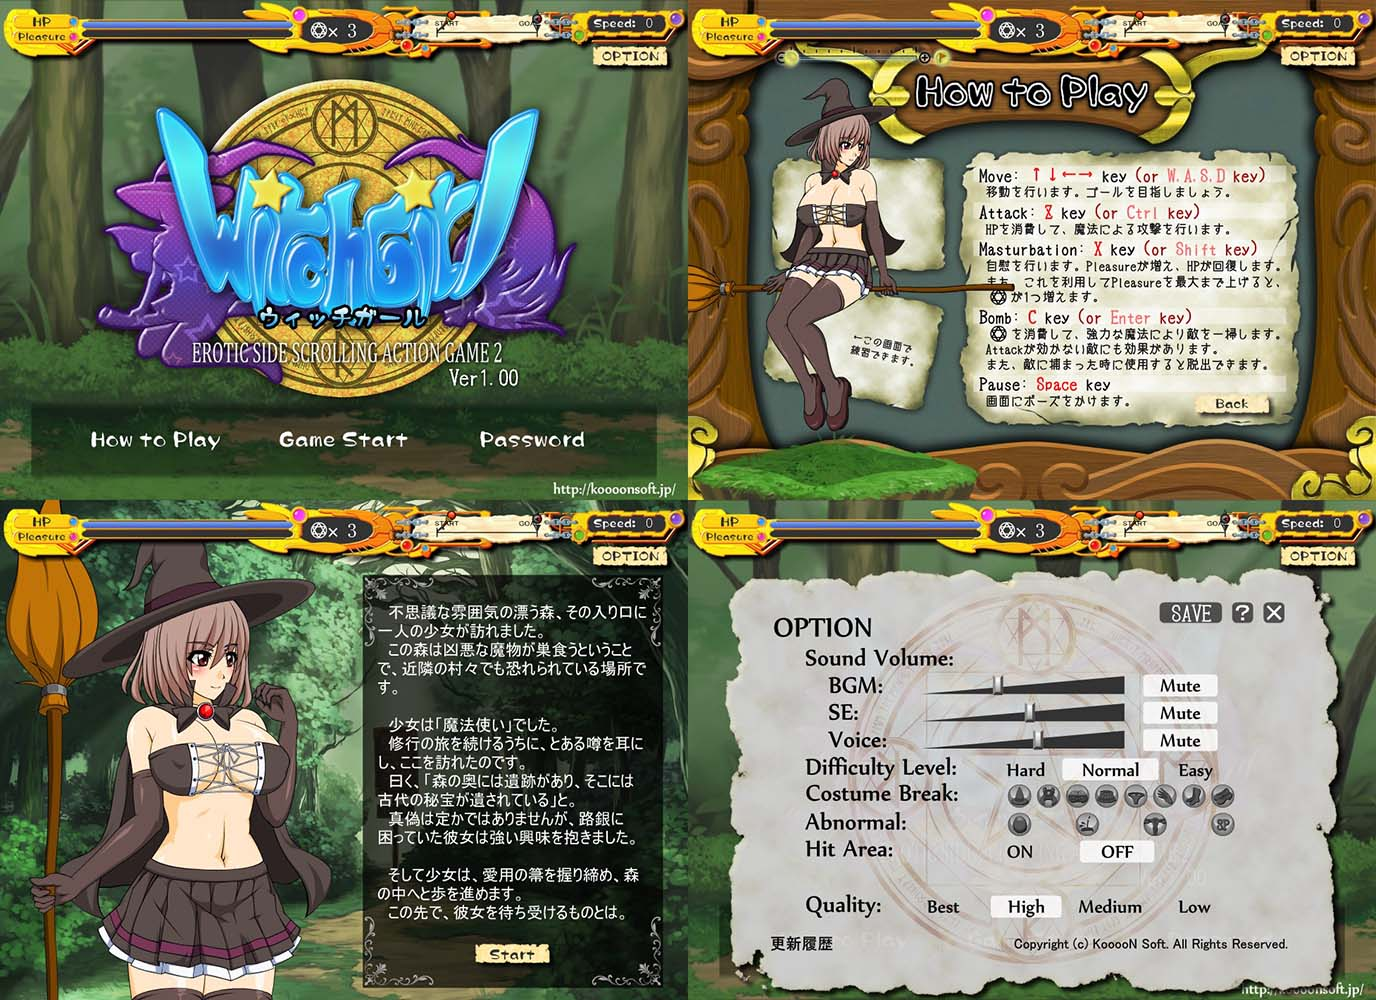 WITCH GIRL -EROTIC SIDE SCROLLING ACTION GAME 2-のサンプル画像1